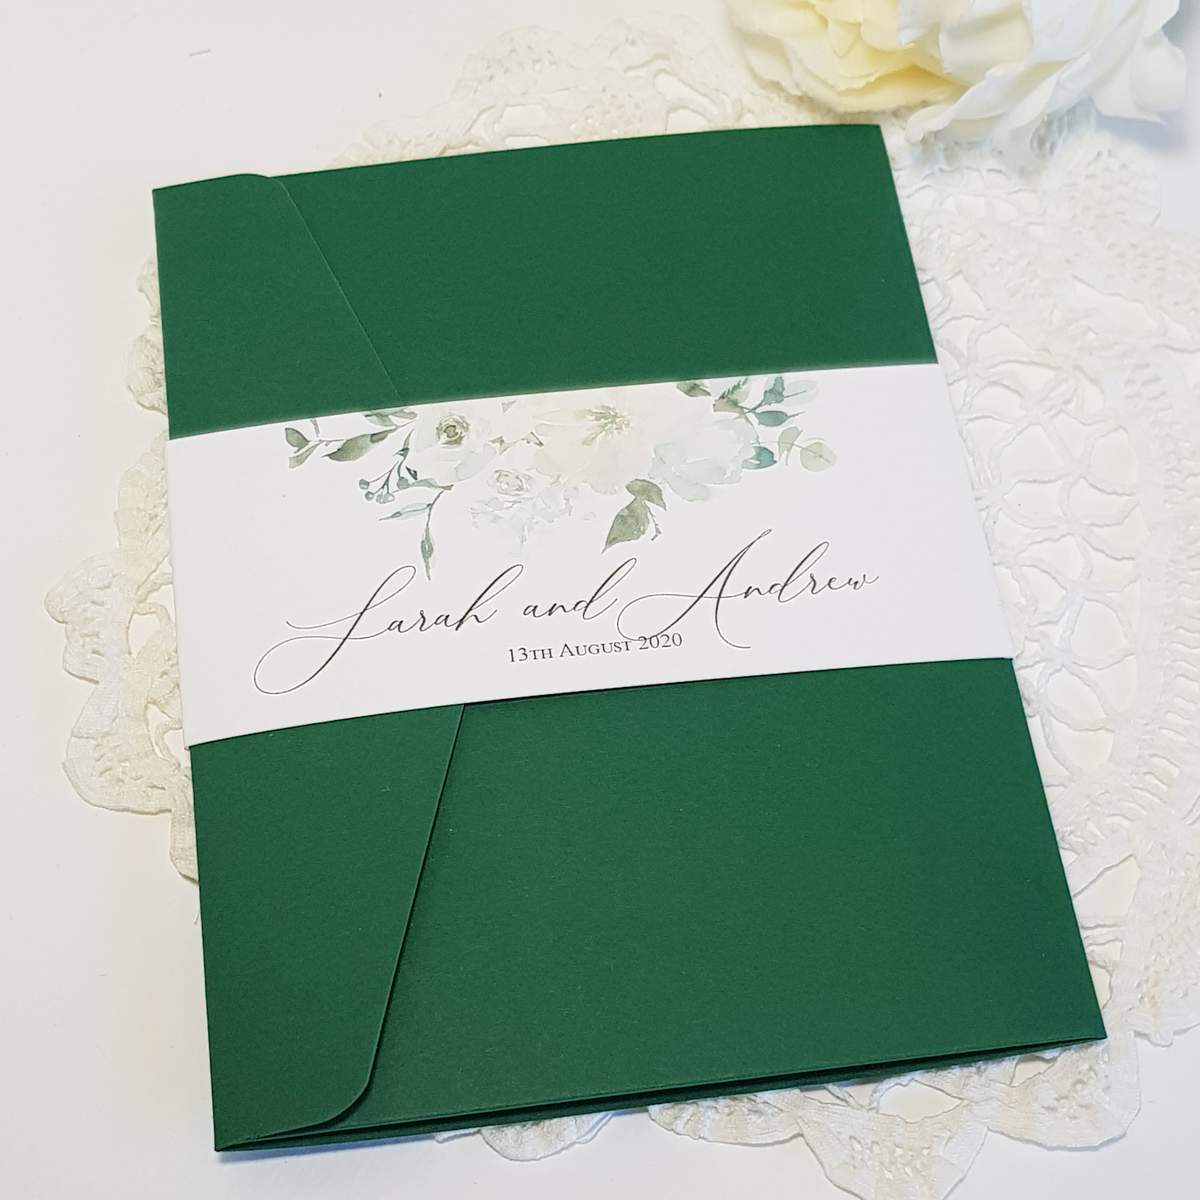 green and white pocket invitation with a bellyband